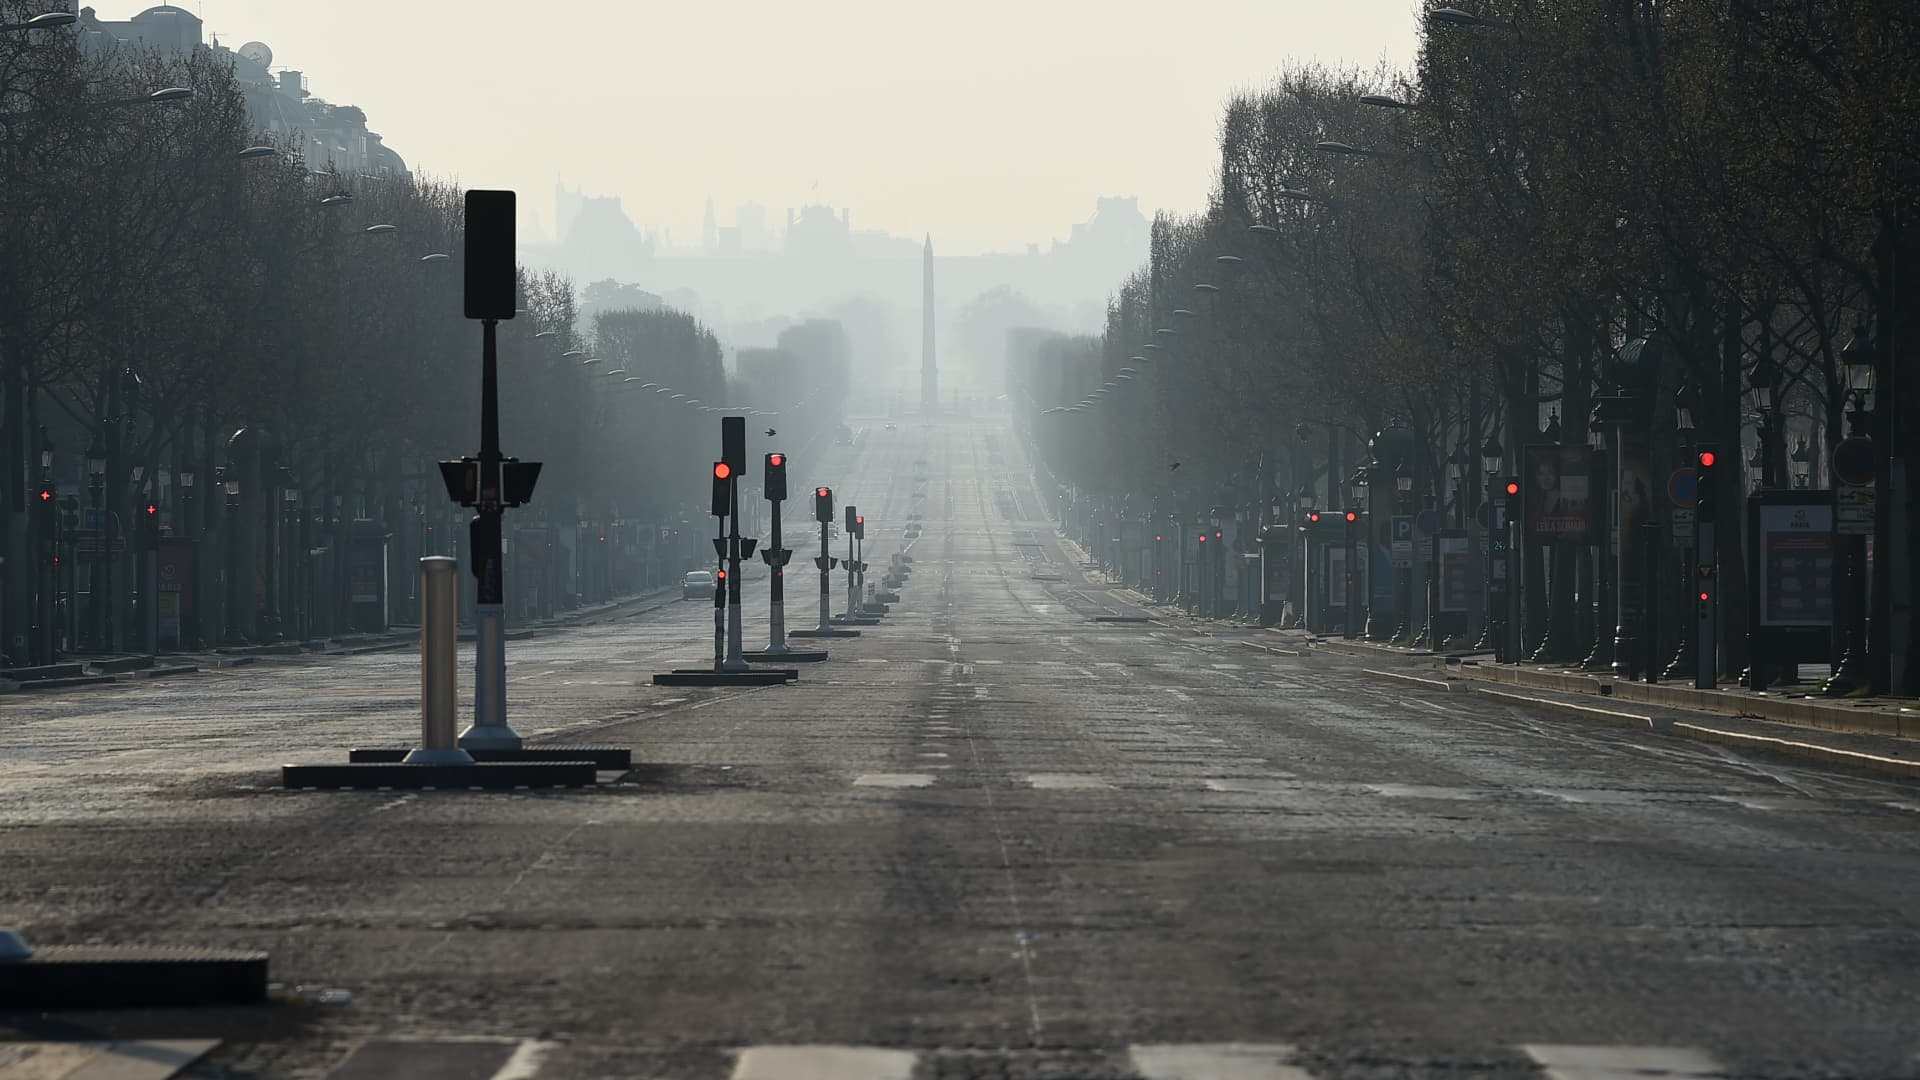 Empty Champs Elysees avenue is pictured on March 28, 2020 in Paris, France. The country has introduced fines for people caught violating its nationwide lockdown measures intended to stop the spread of COVID-19.